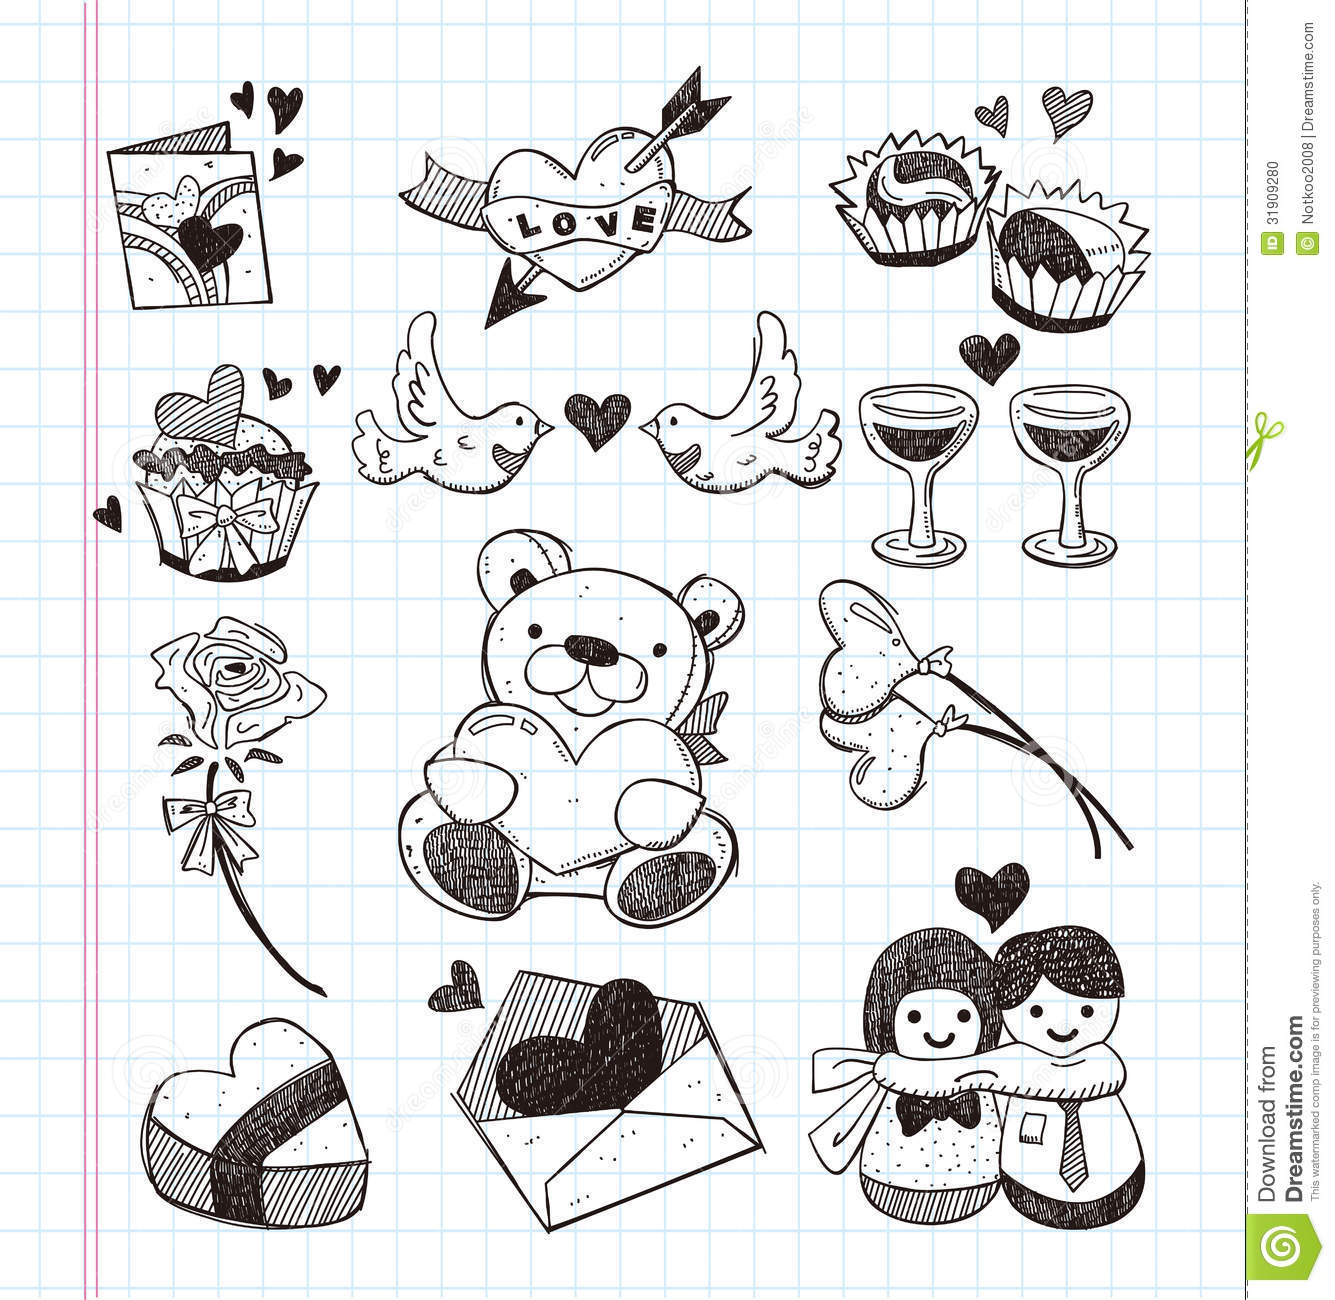 Cute Doodles To Draw For Your Girlfriend Doodle love icons stoc...